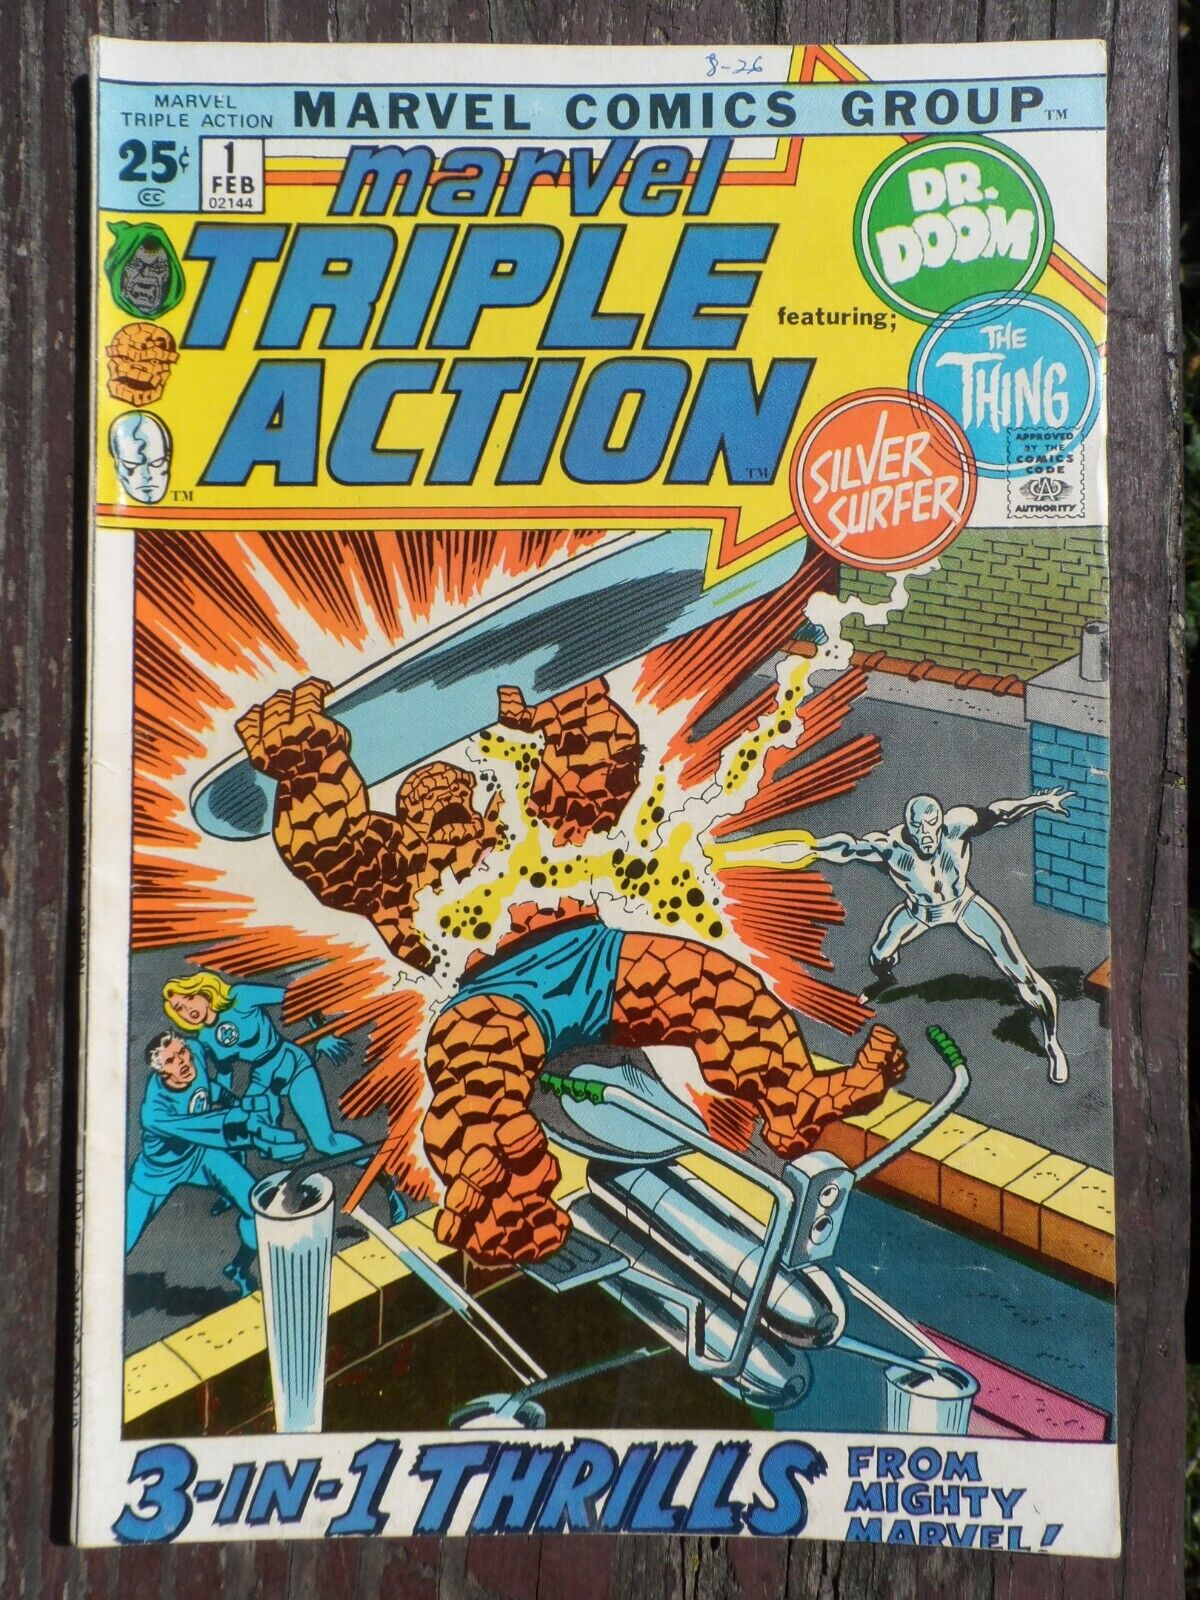 Marvel Triple Action 1 SILVER SURFER Thing Dr. Doom Comic Book Nice Copy - $4.00